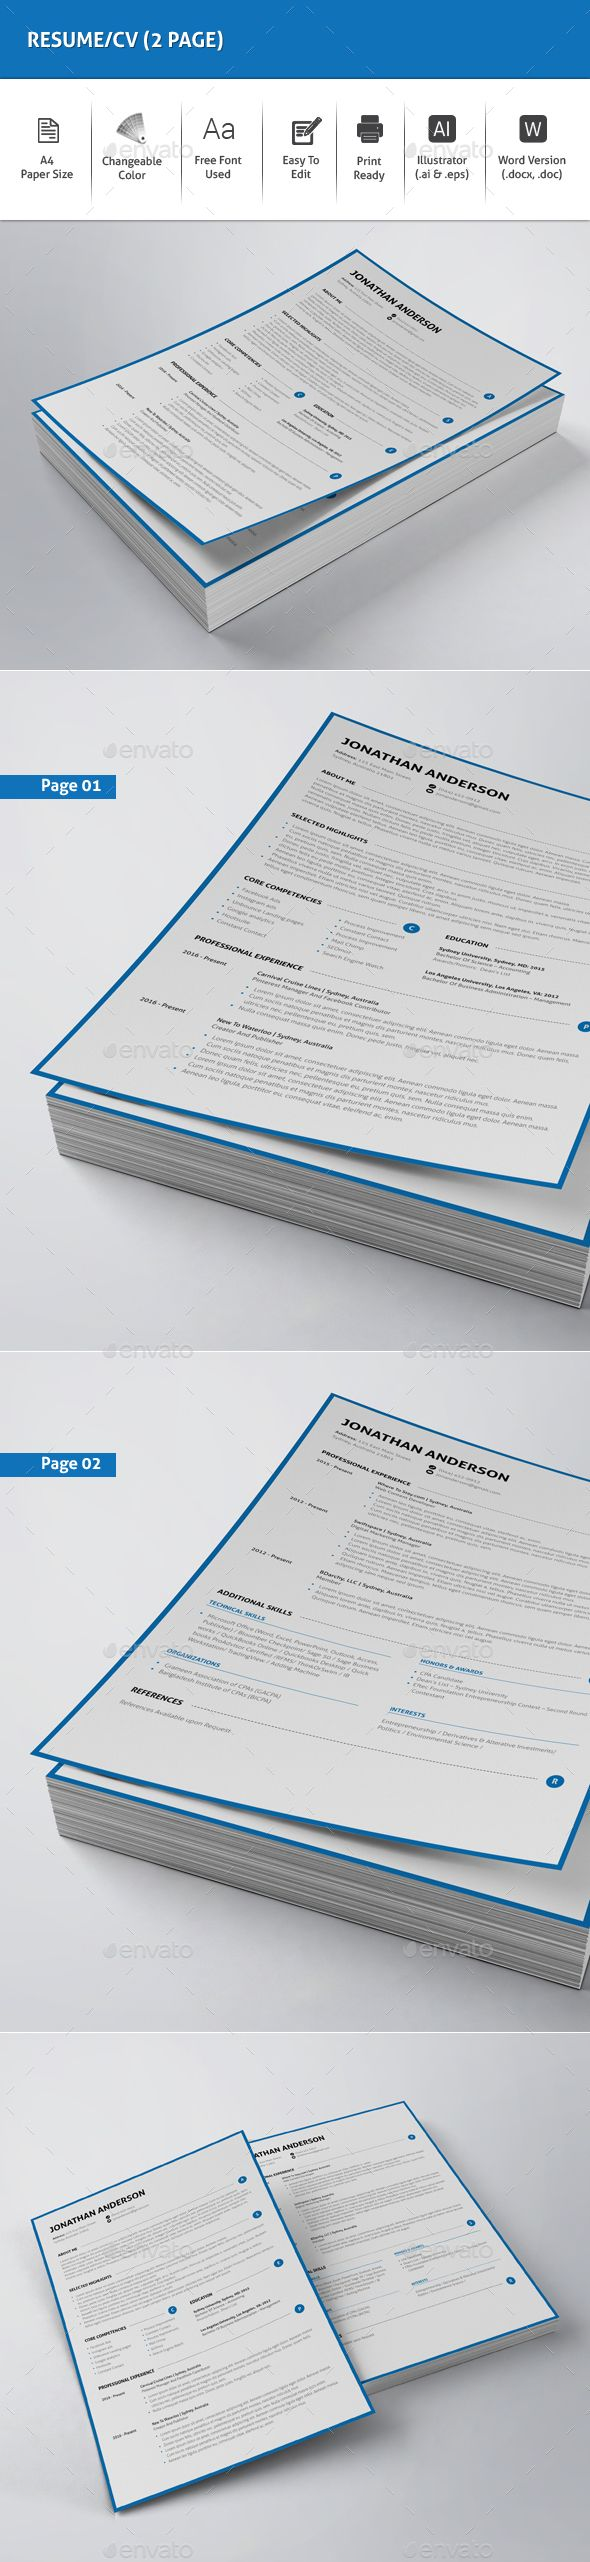 277 Best Resume Images On Pinterest Resume Templates Font Logo